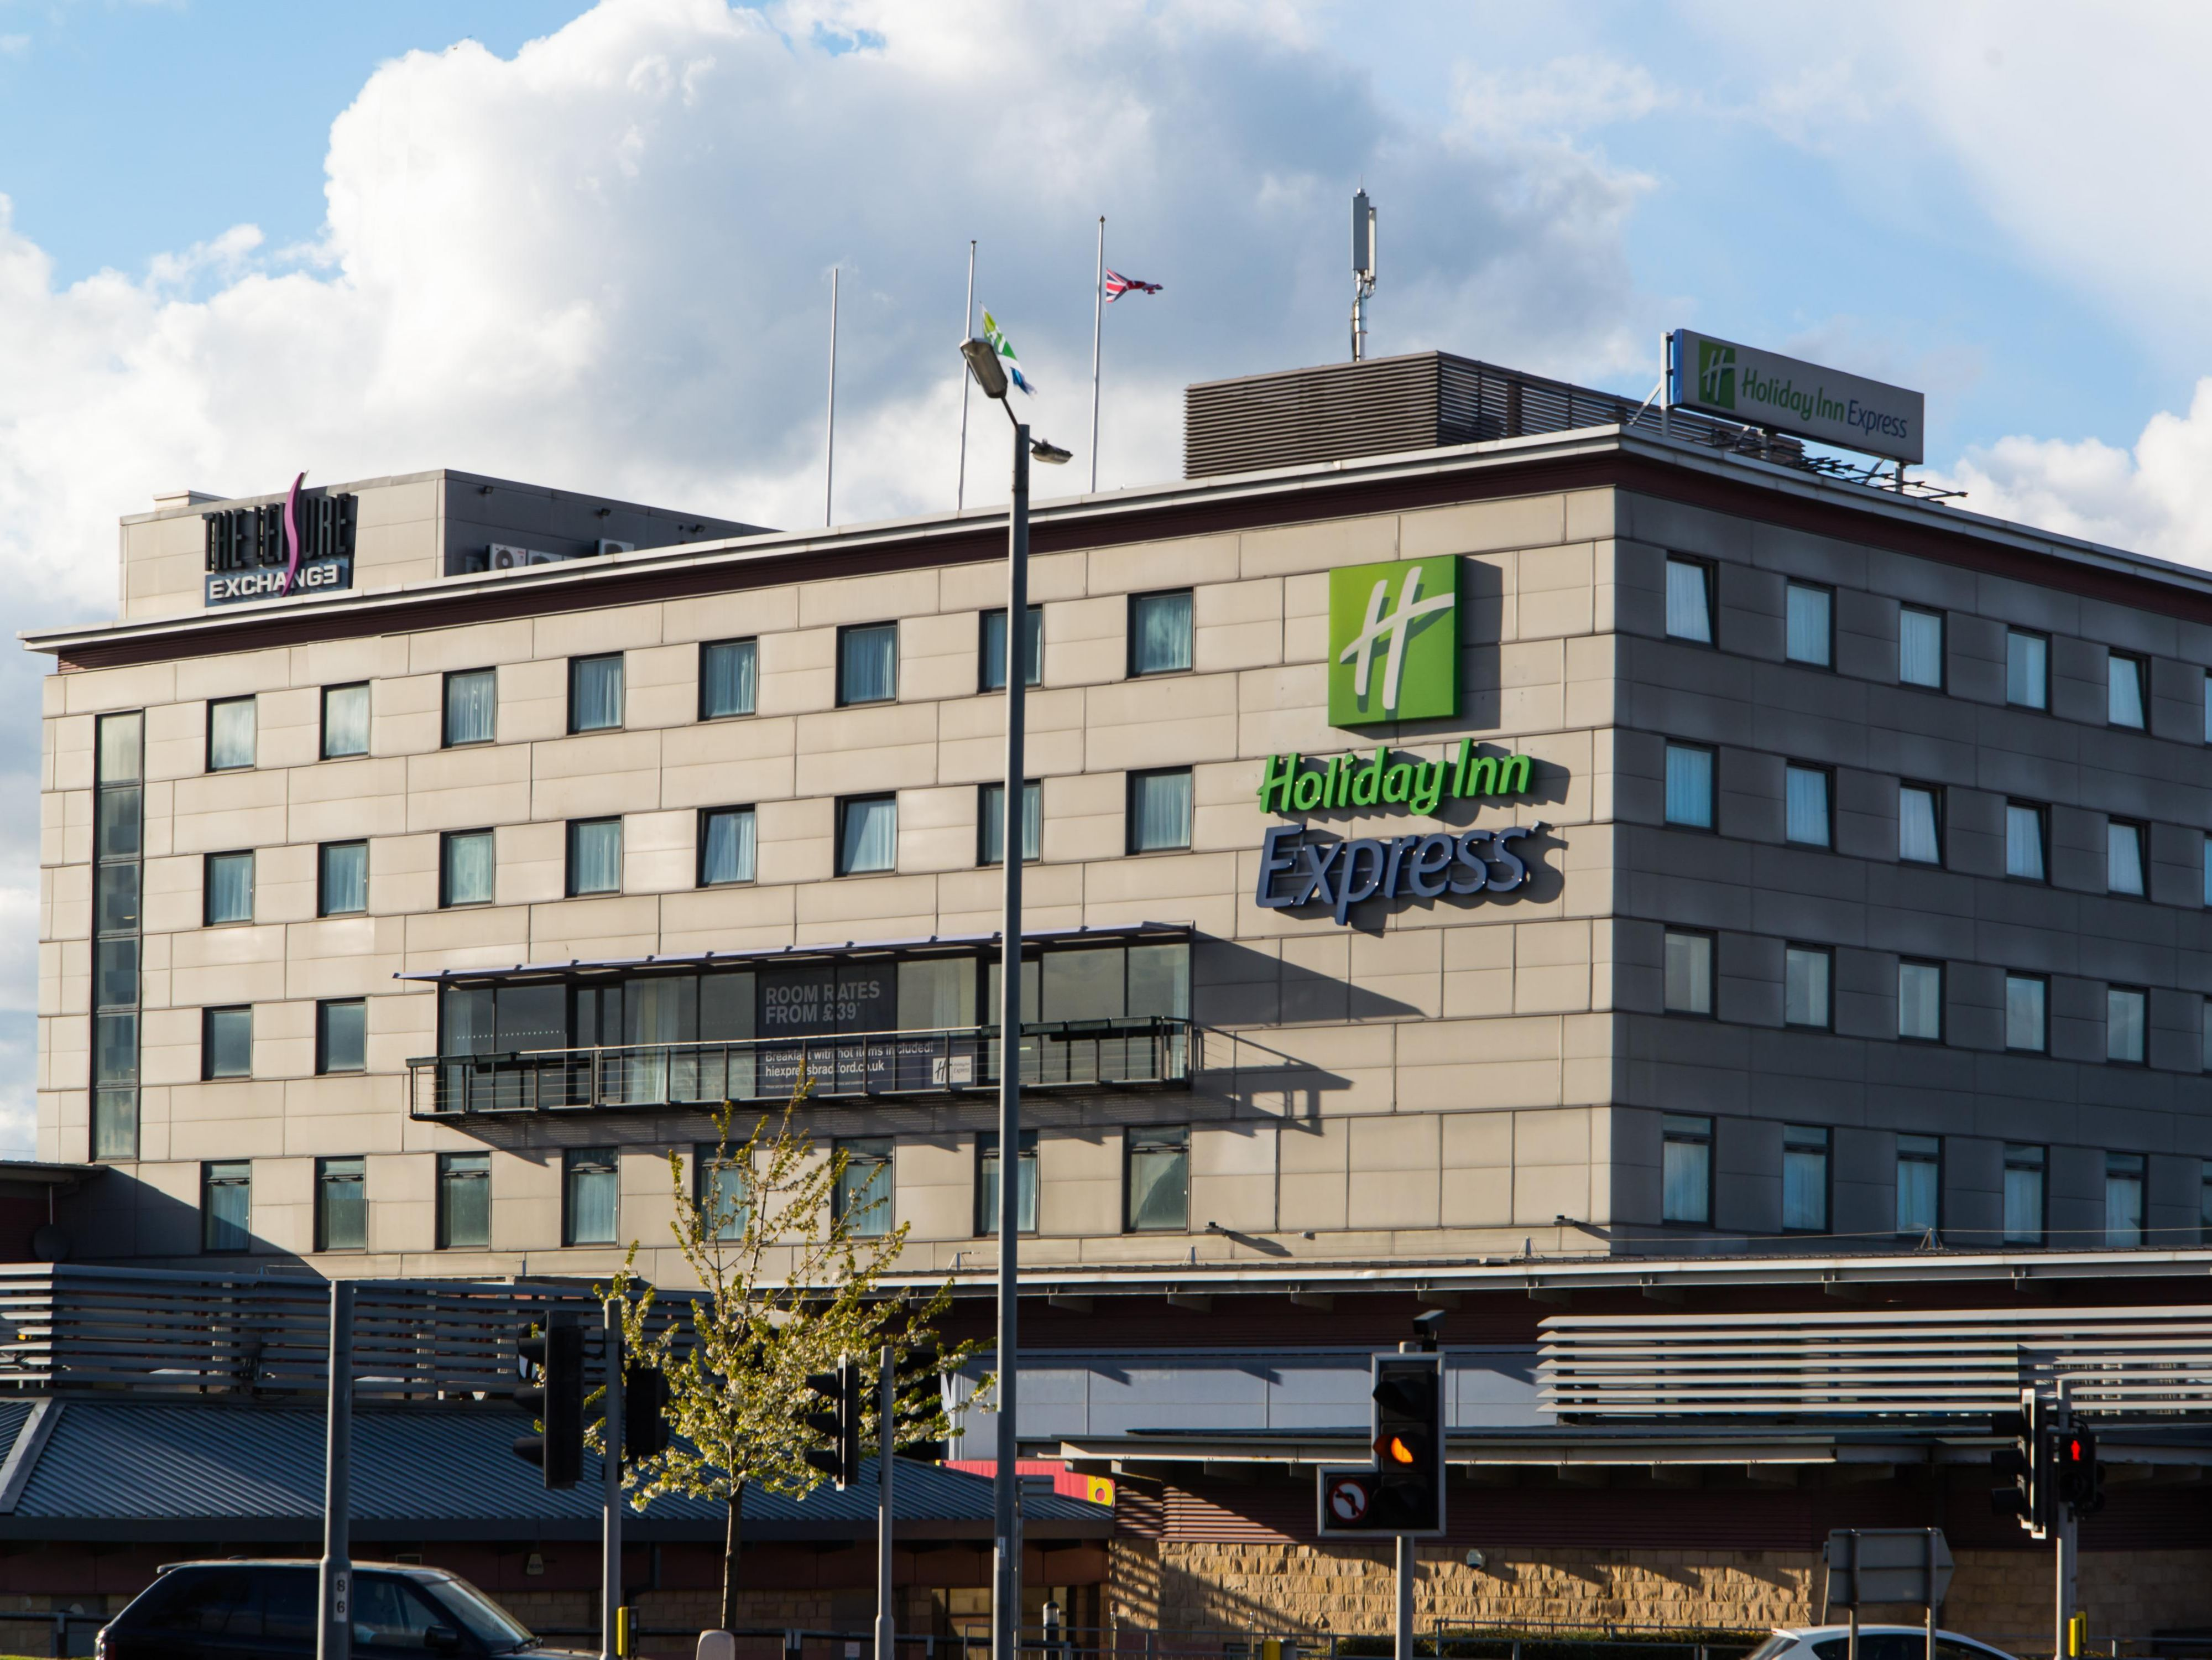 Our Bradford hotel is located in Bradford Leisure Exchange complex